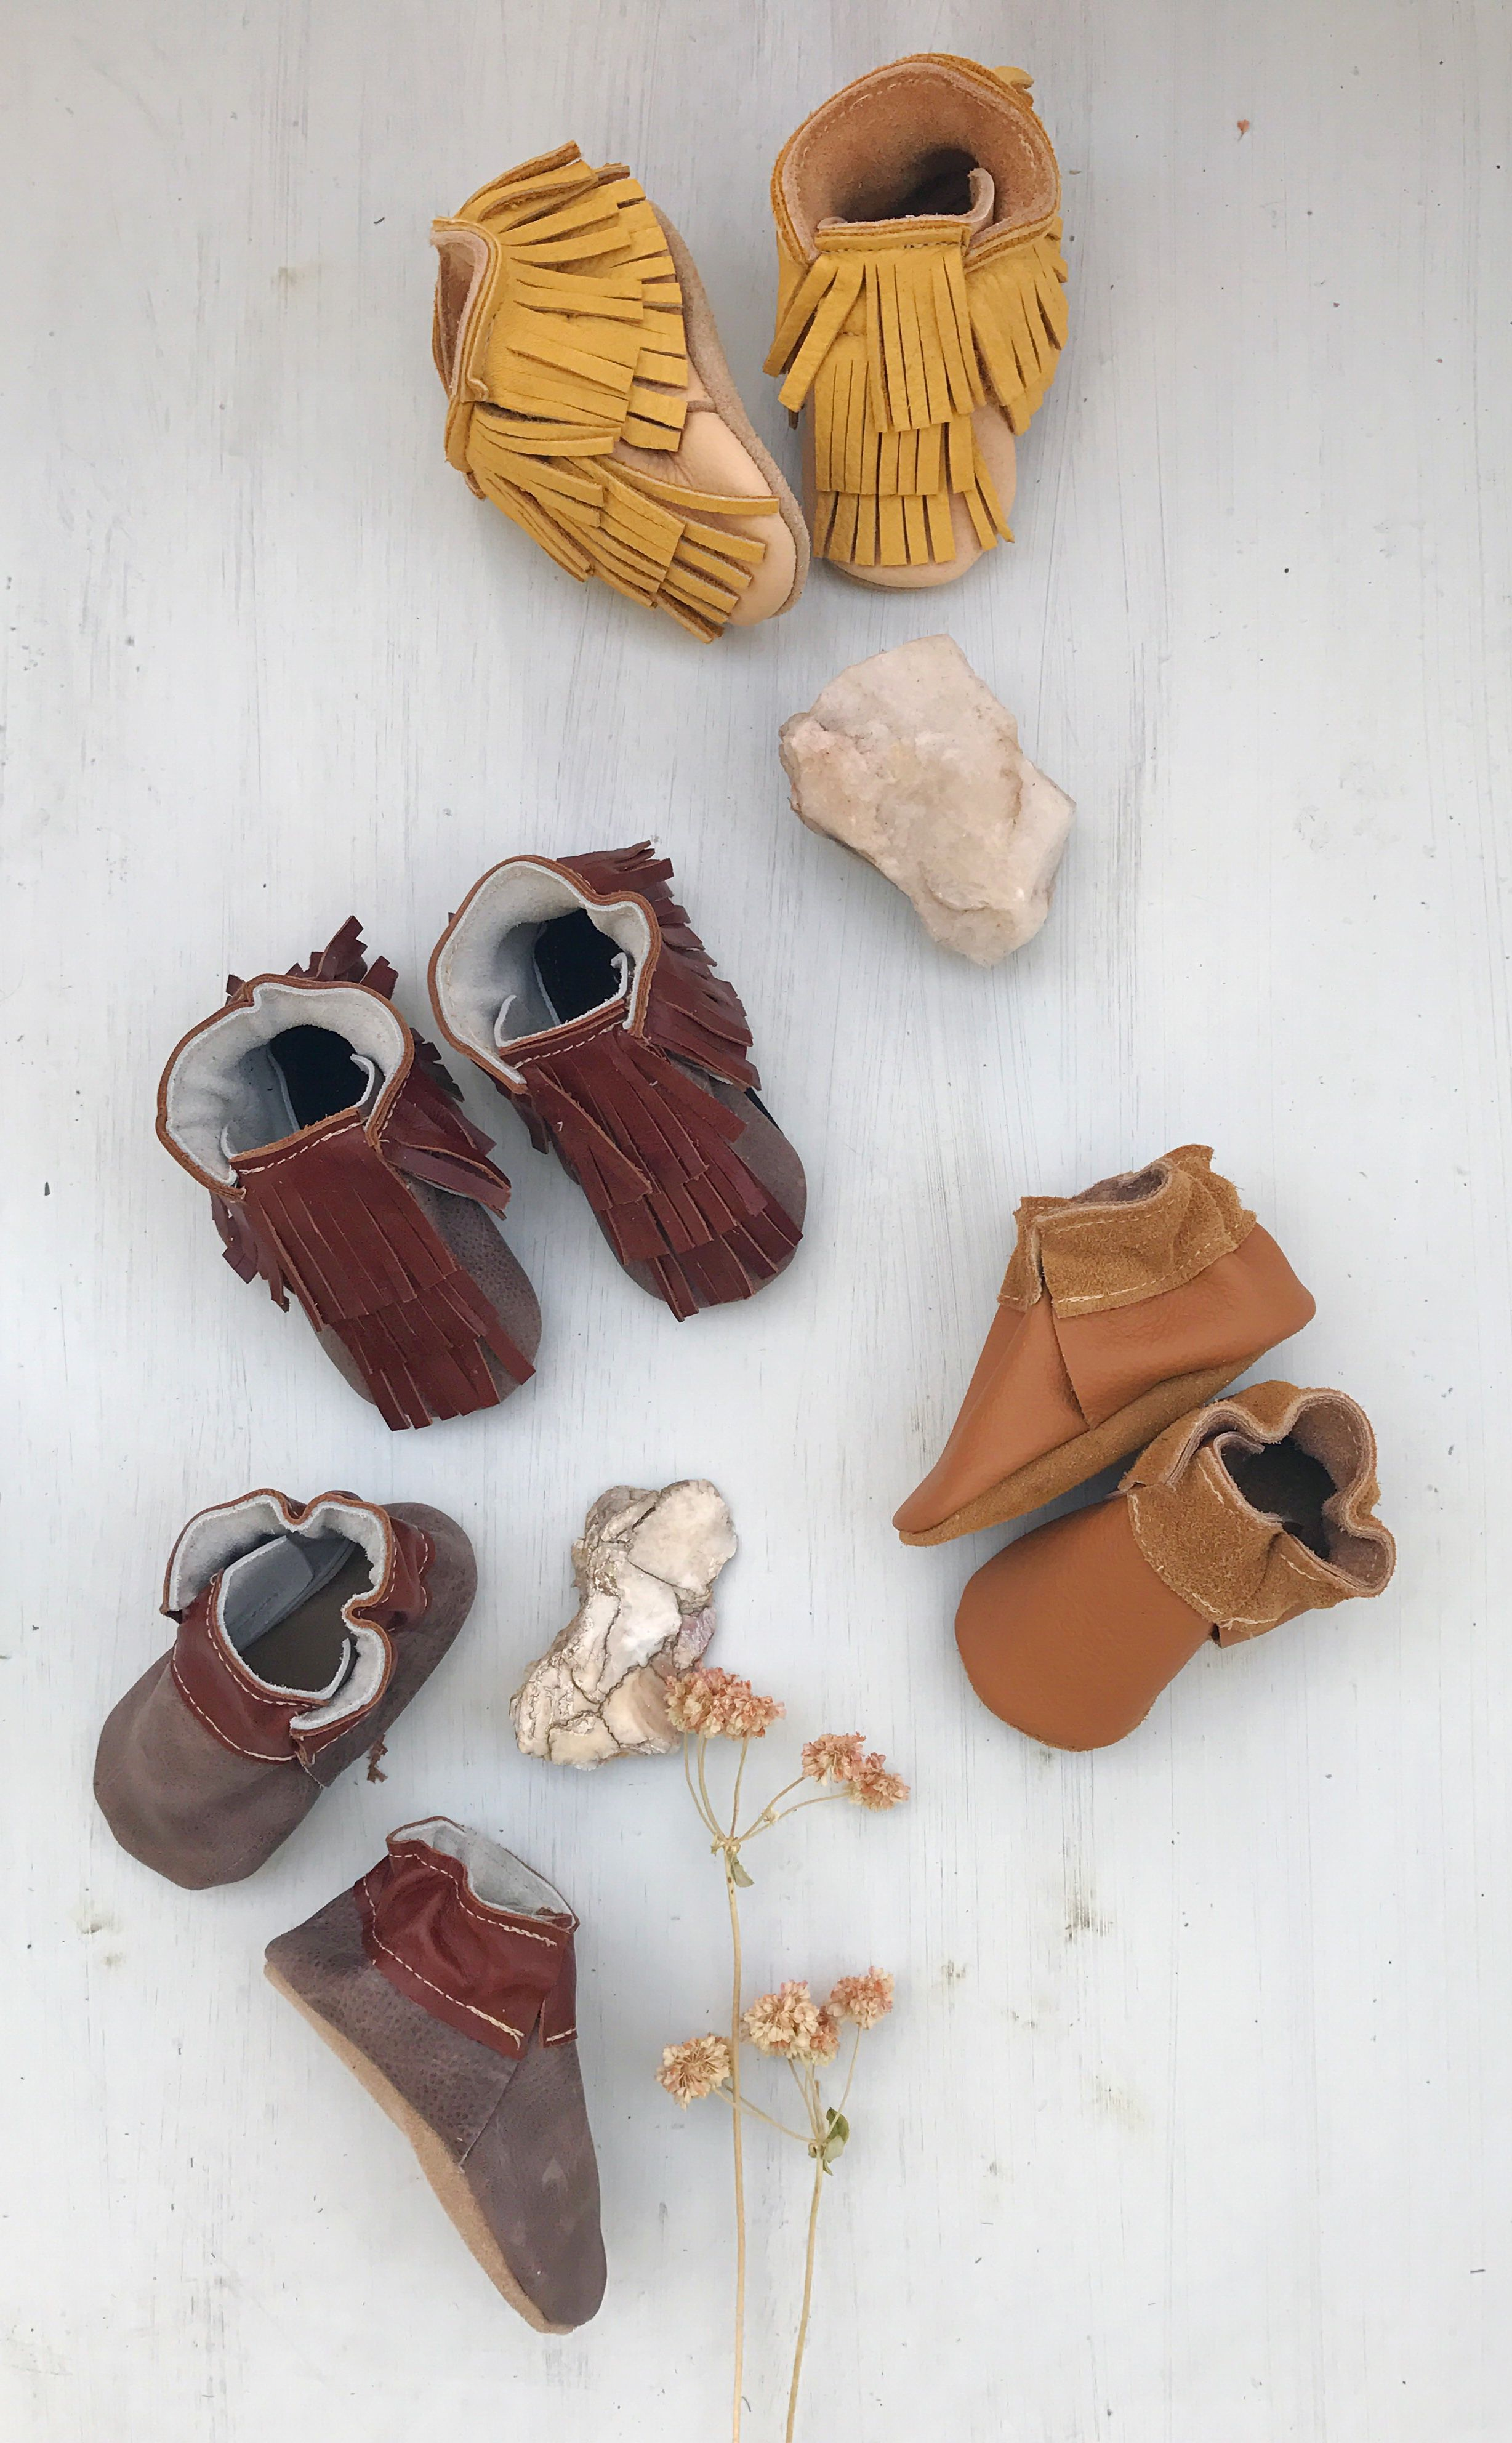 Can't wait to put these on baby!! sweetest little starry knight design baby Fringe boots